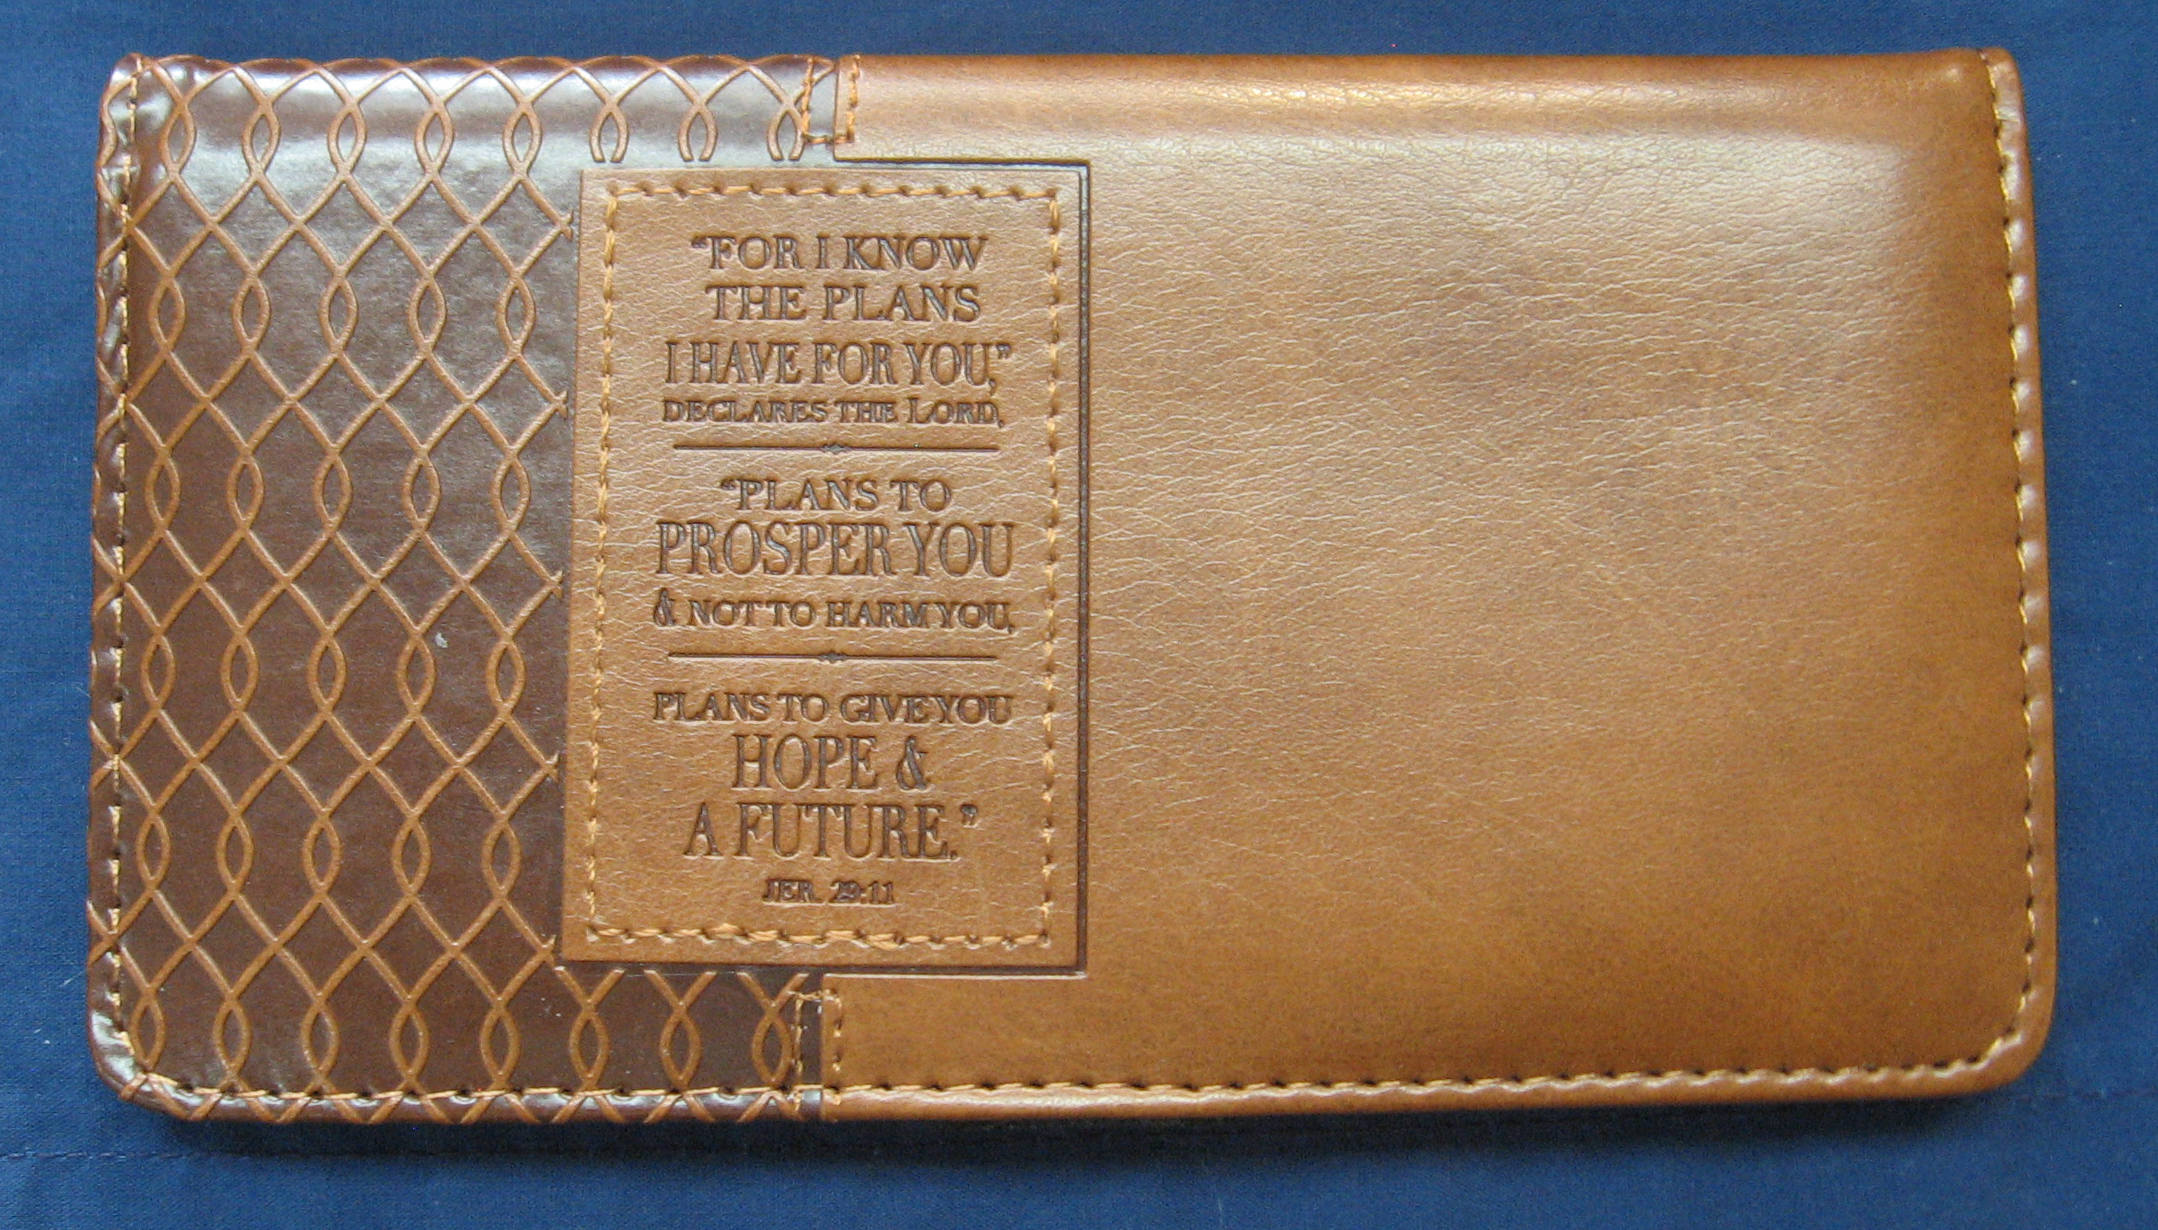 JEREMIAH 29-11 LuxLeather Checkbook Cover-6006937117068